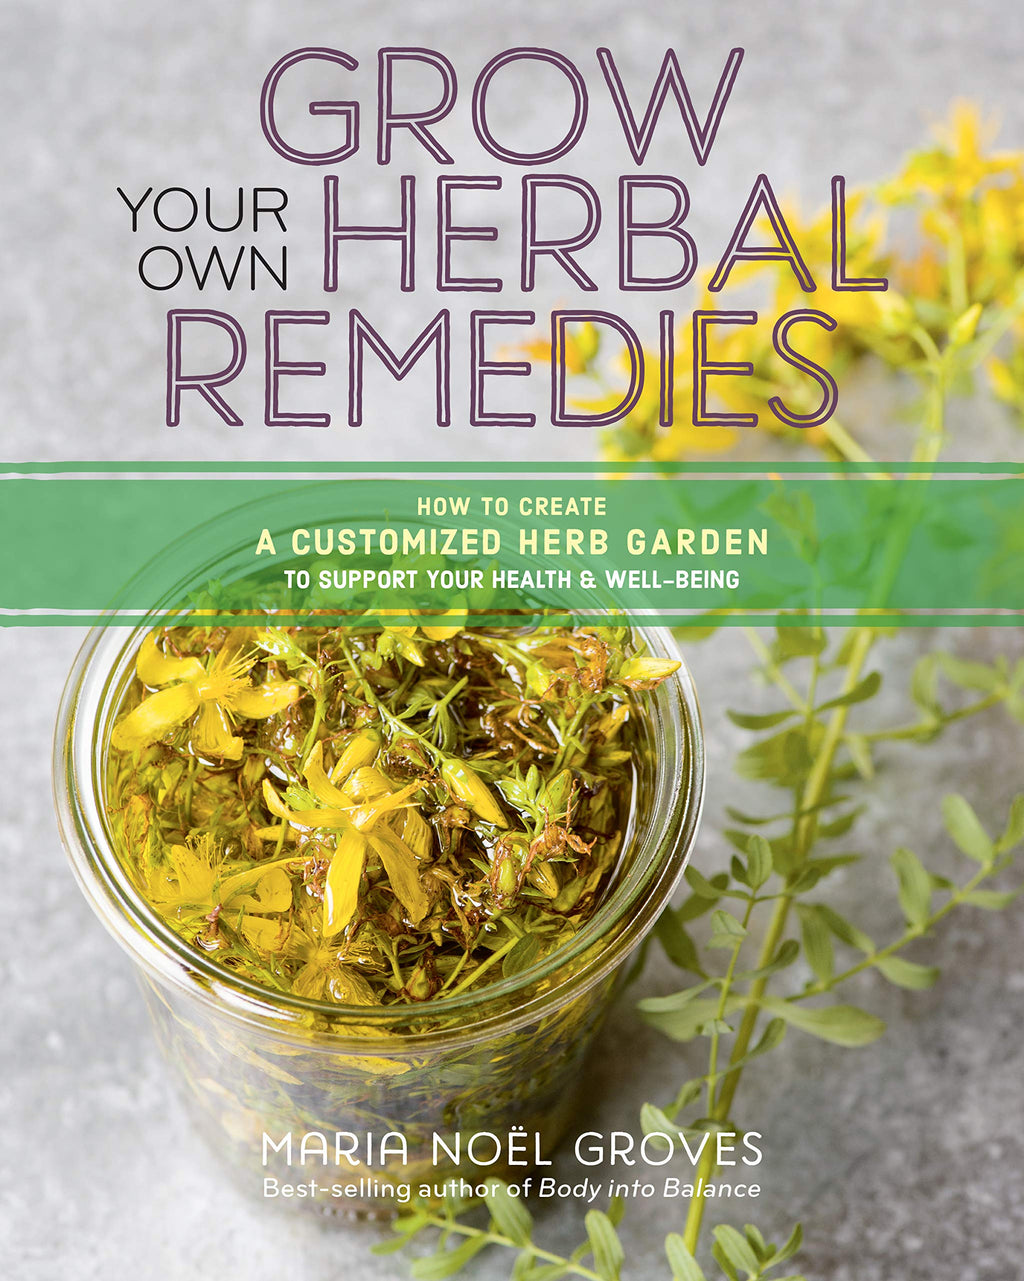 Grow Your Own Herbal Remedies by Maria Noel Groves